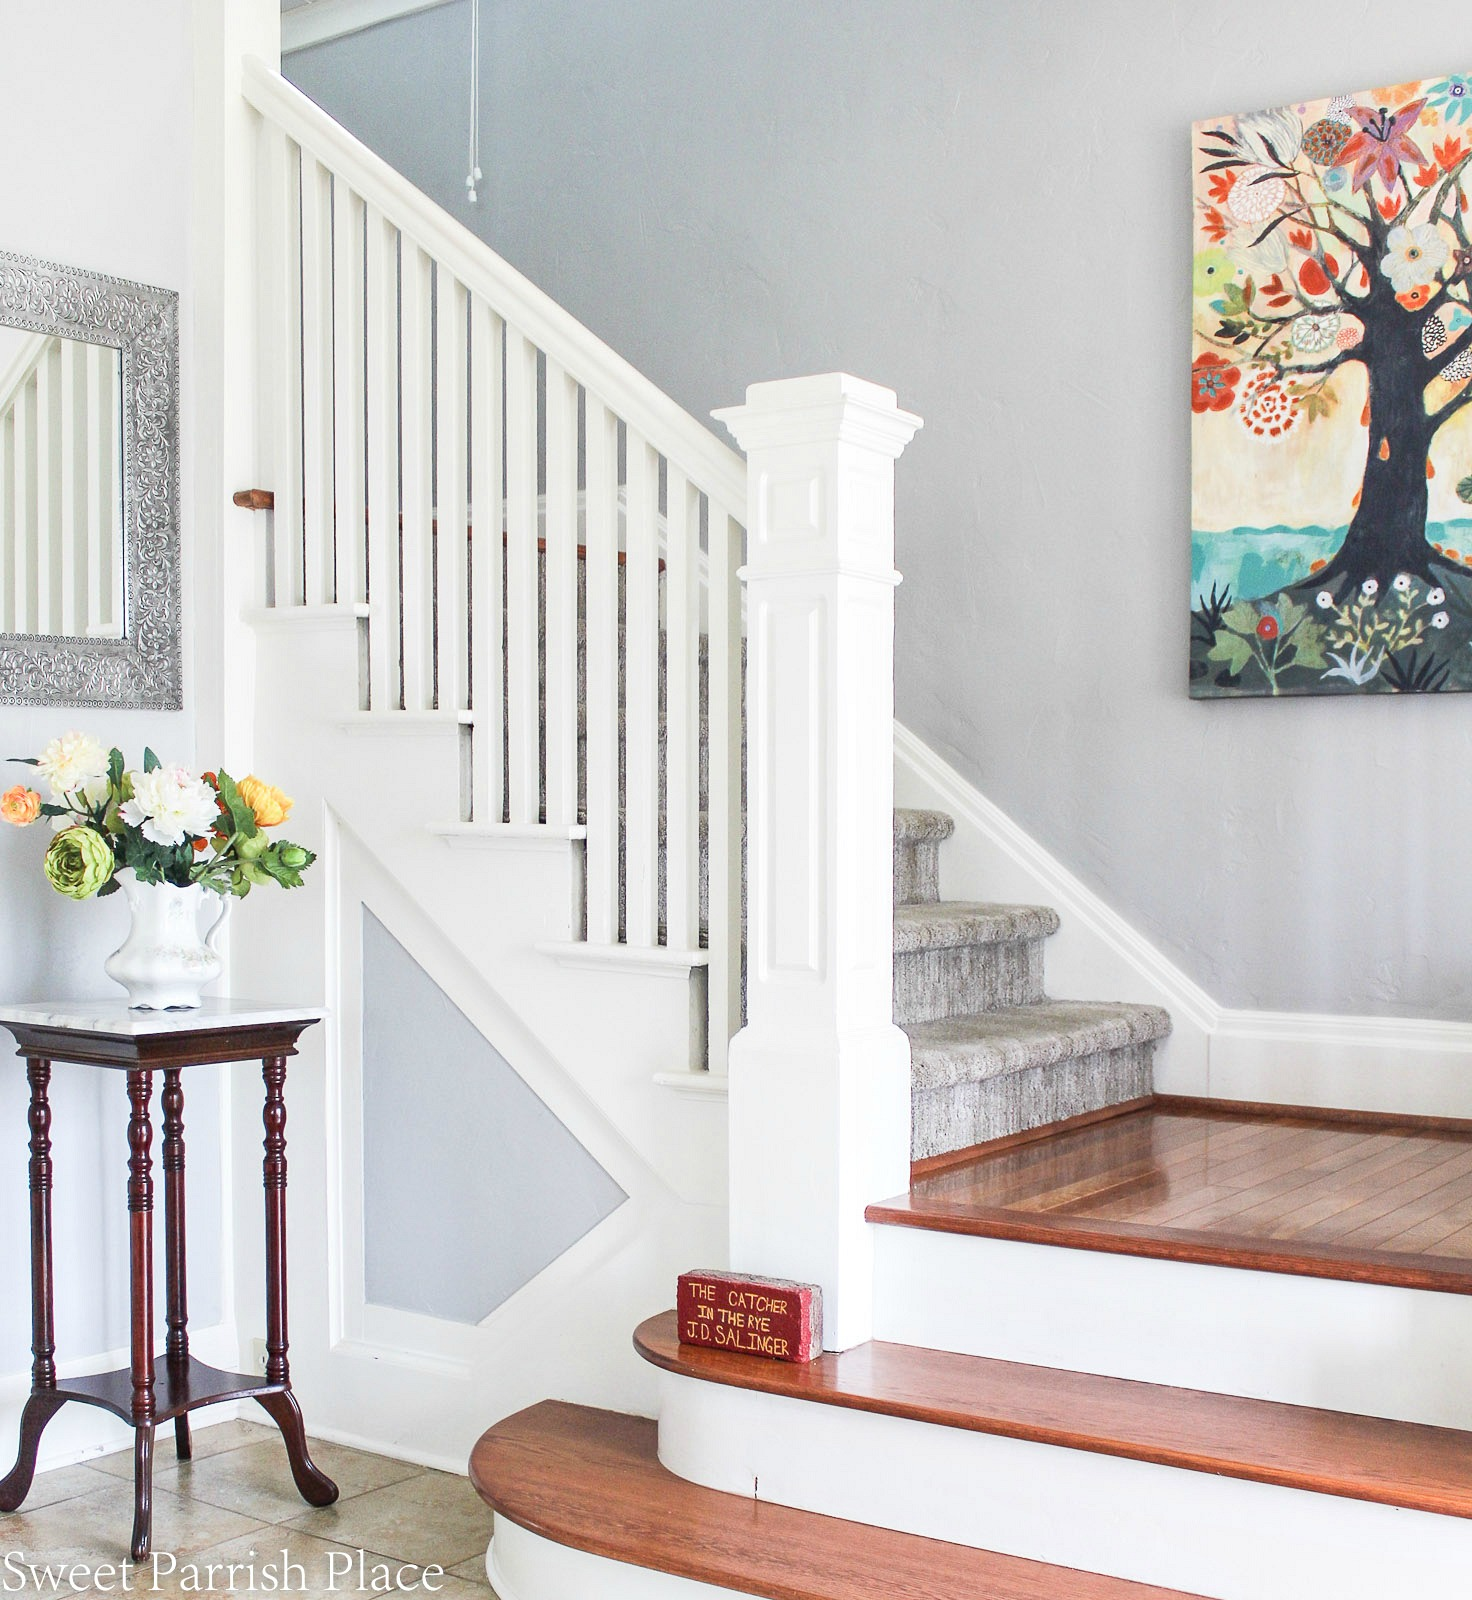 97 year old home tour-stairwell